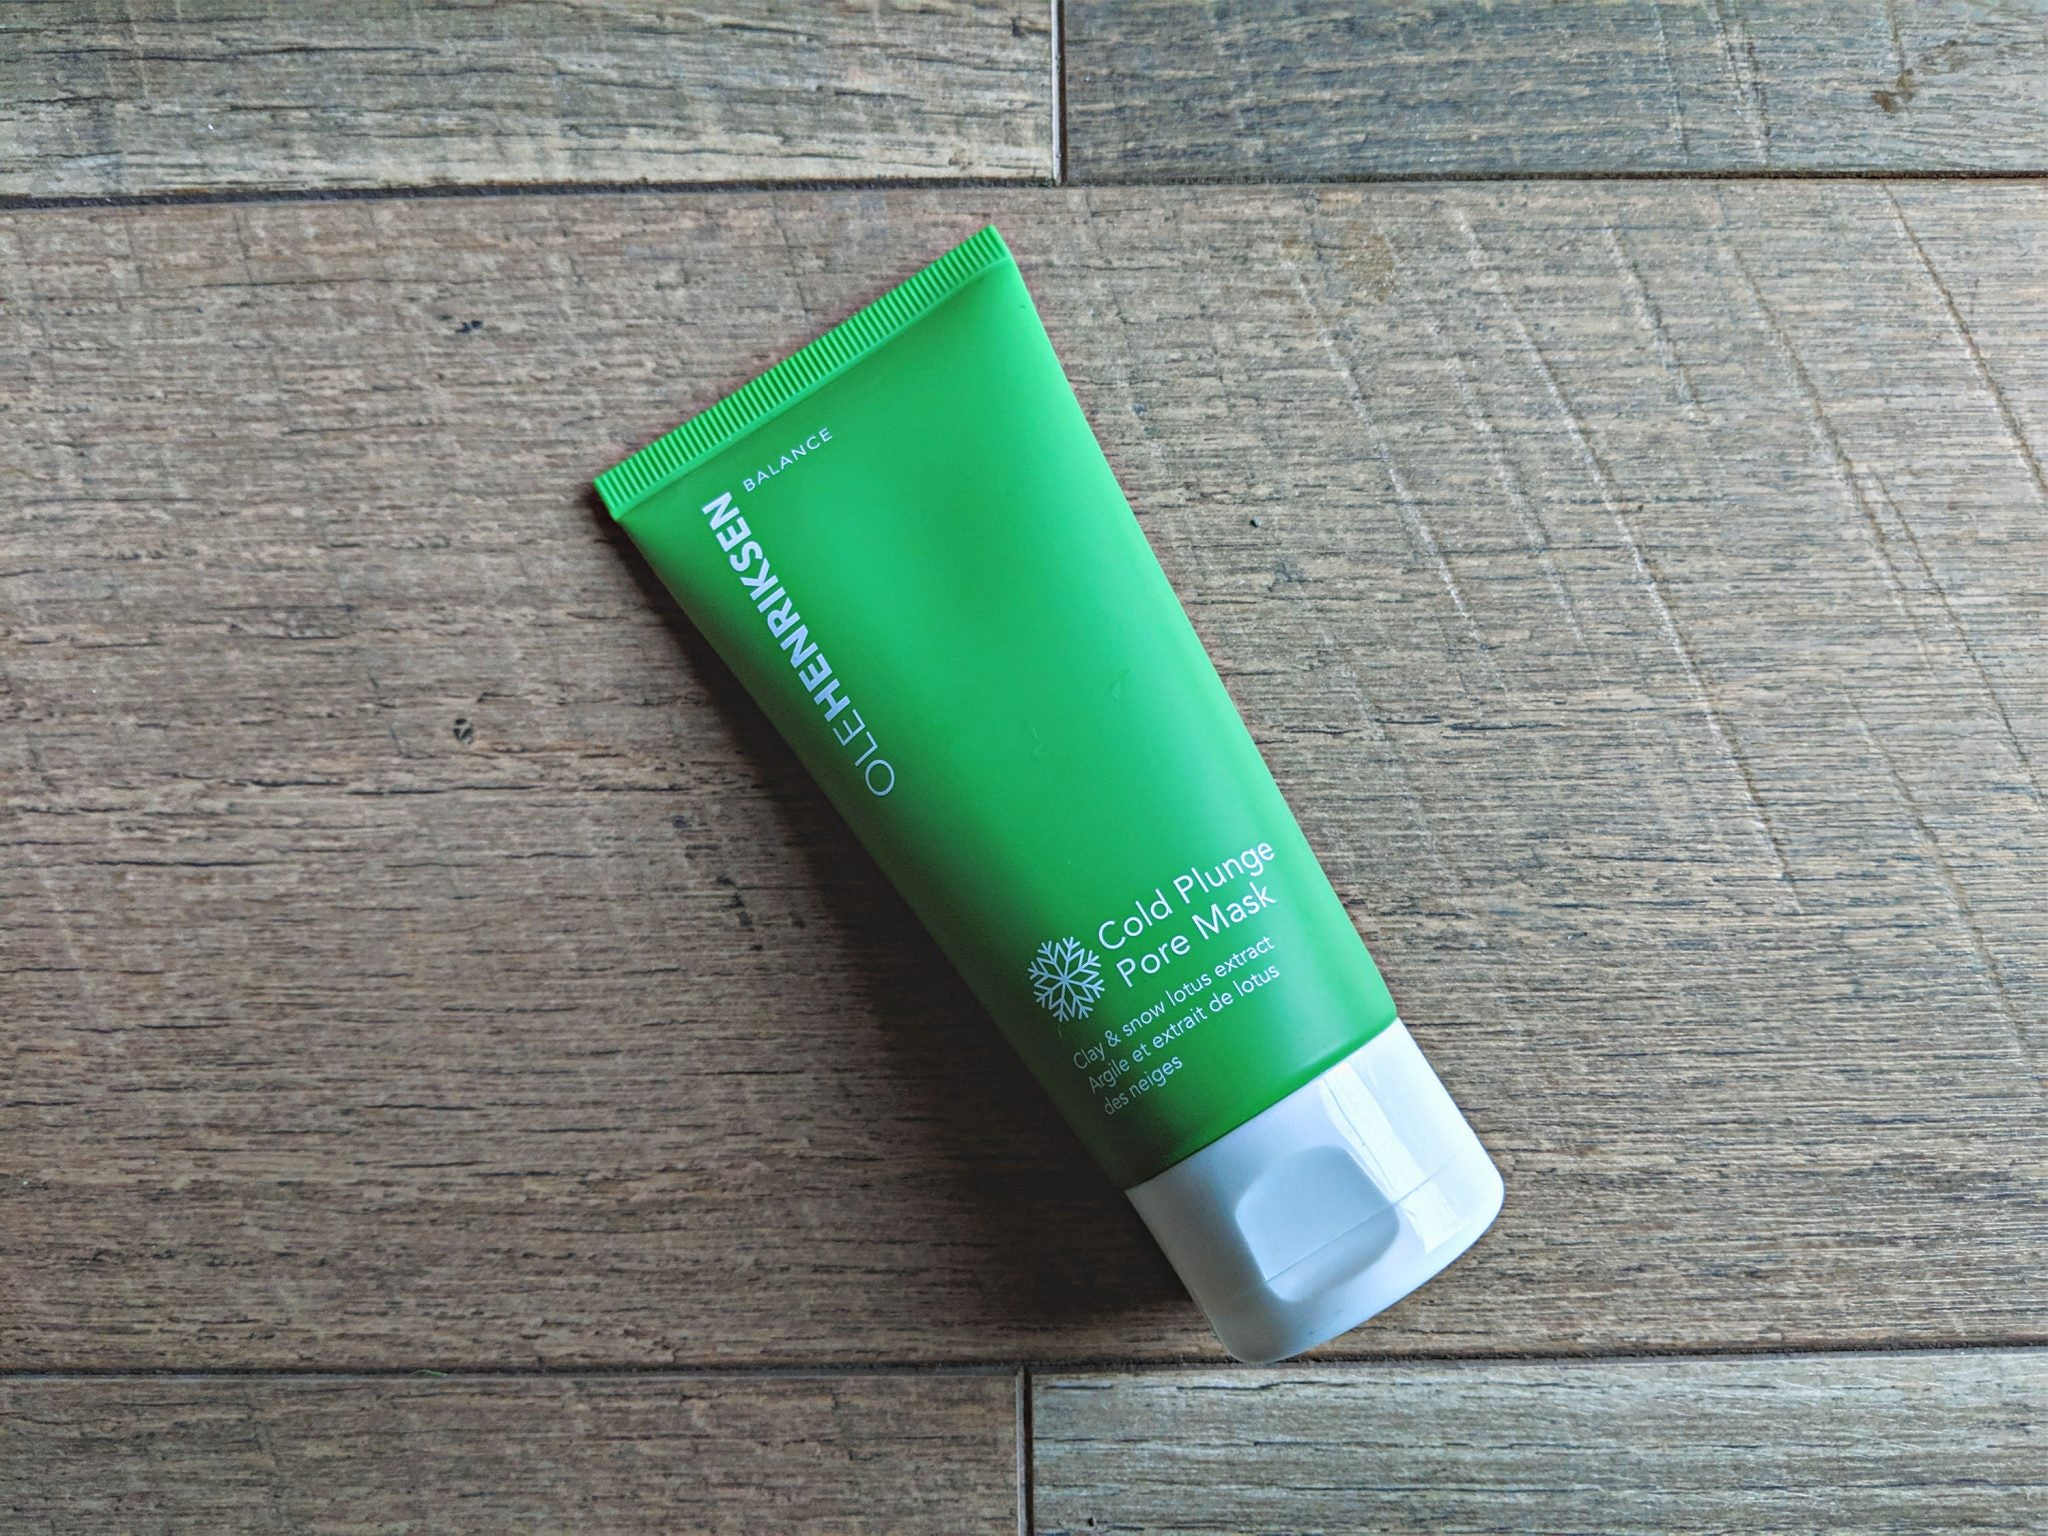 Large pores? Check this Ole Henriksen Cold Plunge Pore Mask review #skincare